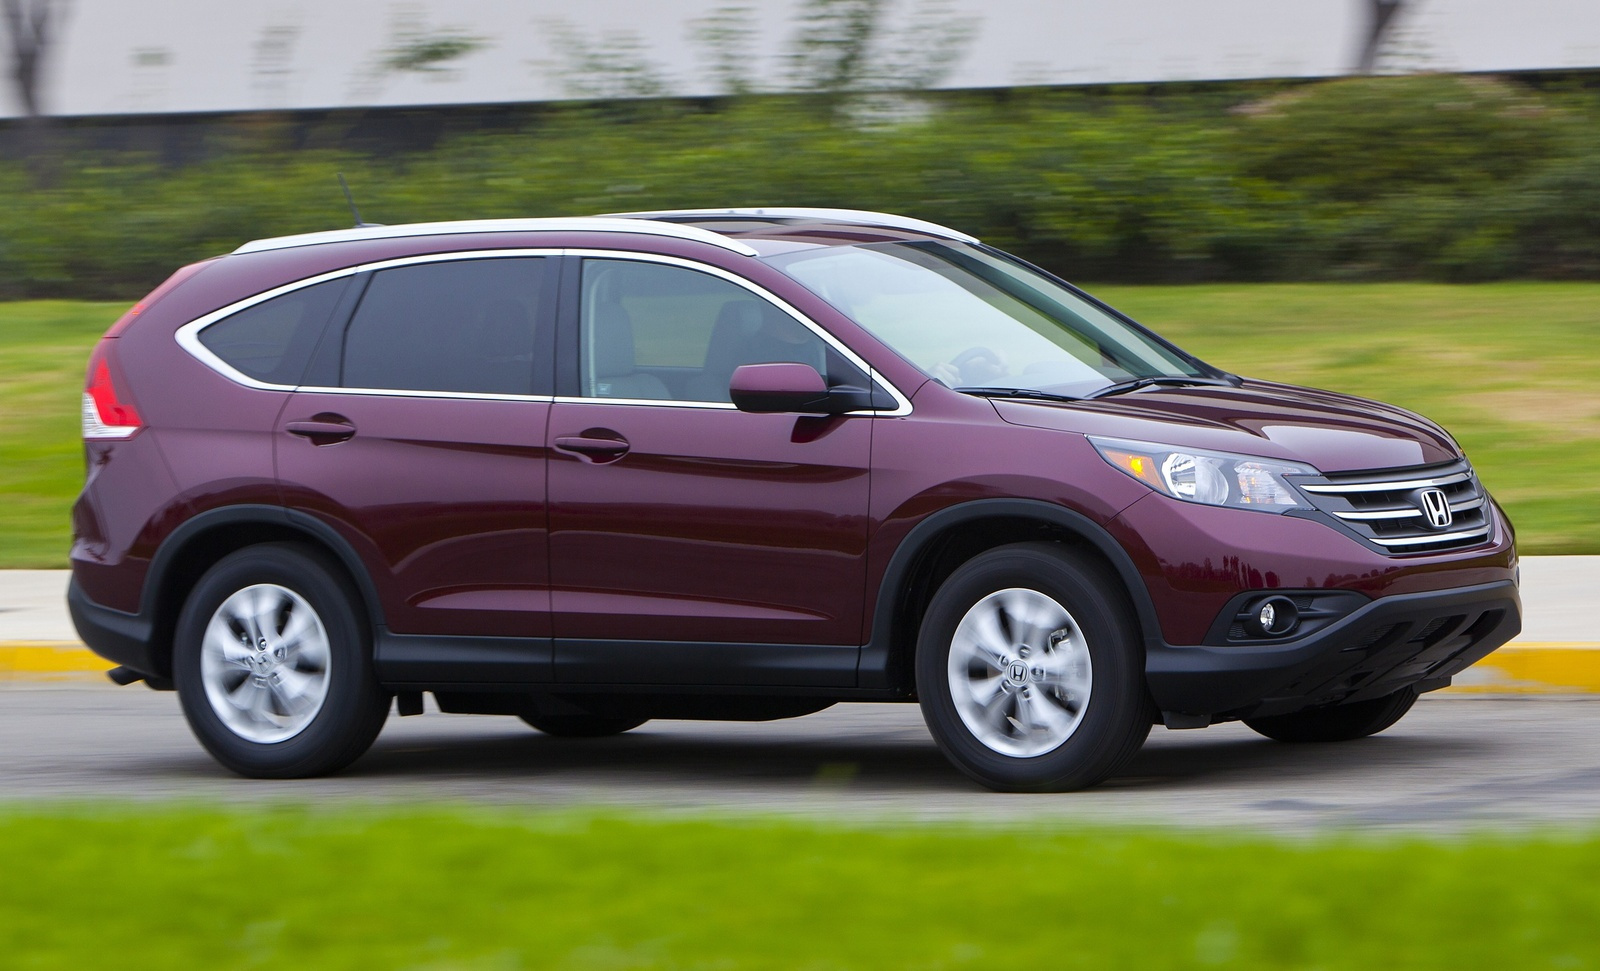 2014 honda cr v overview cargurus for Truecar com honda crv